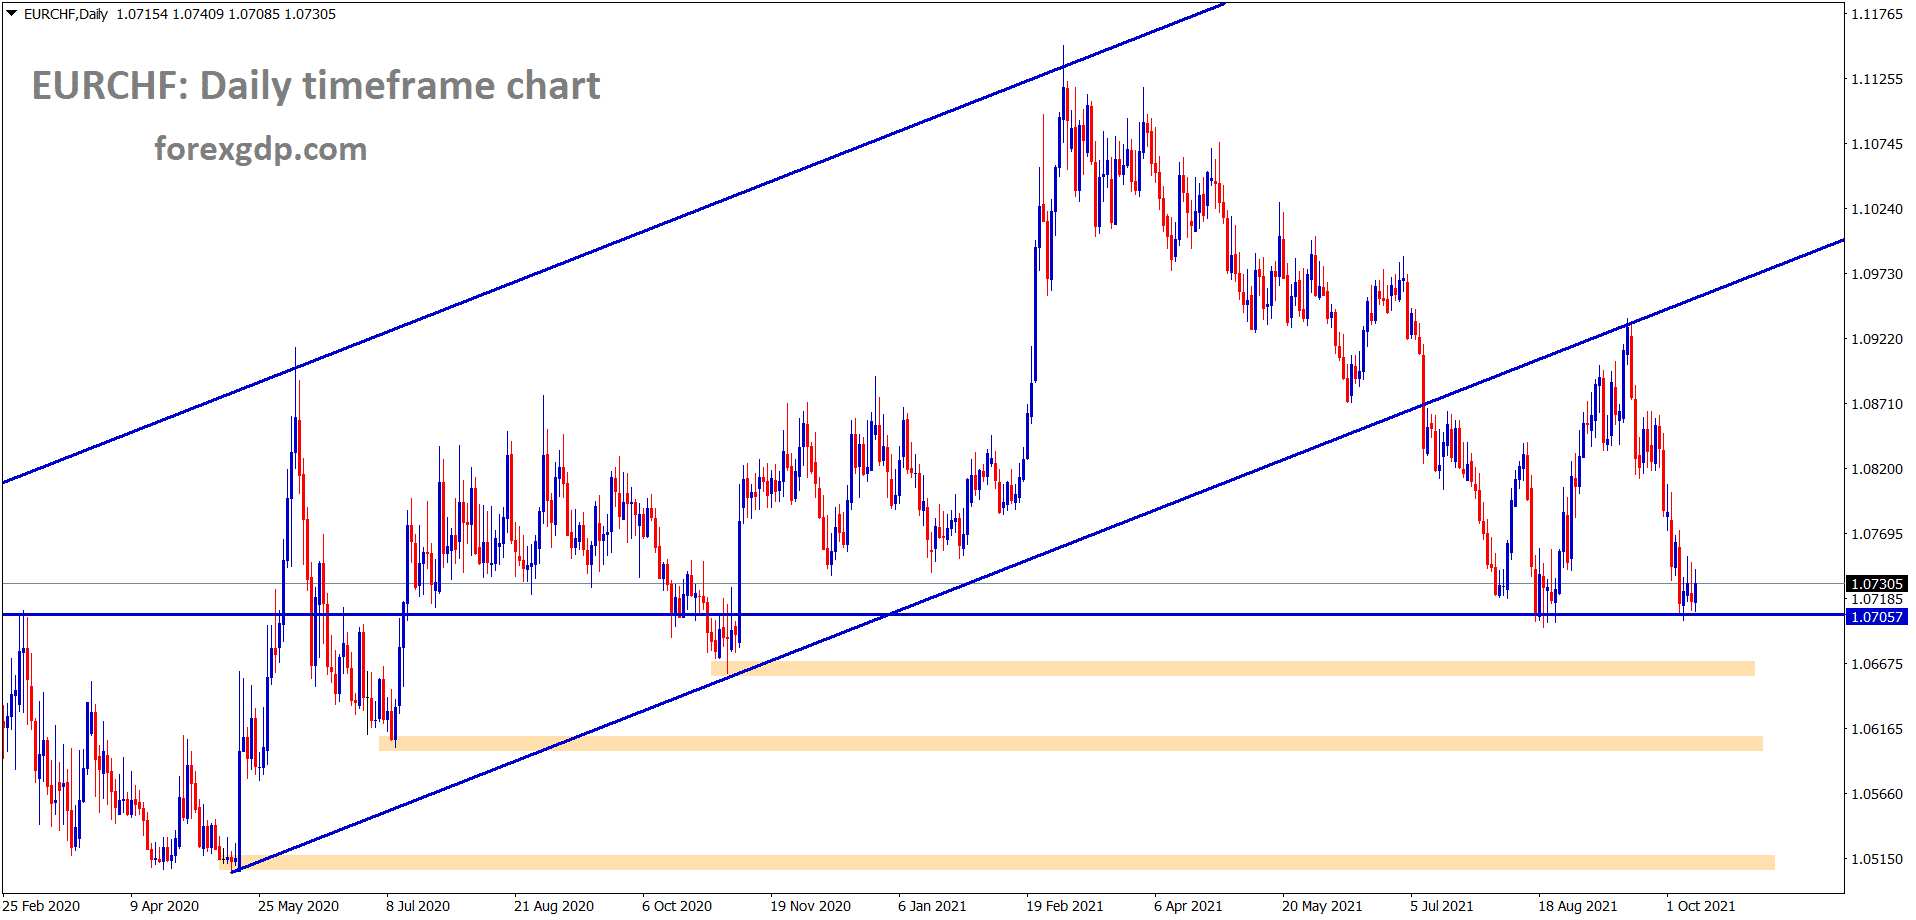 EURCHF is still standing at the support area wait for breakout or reversal